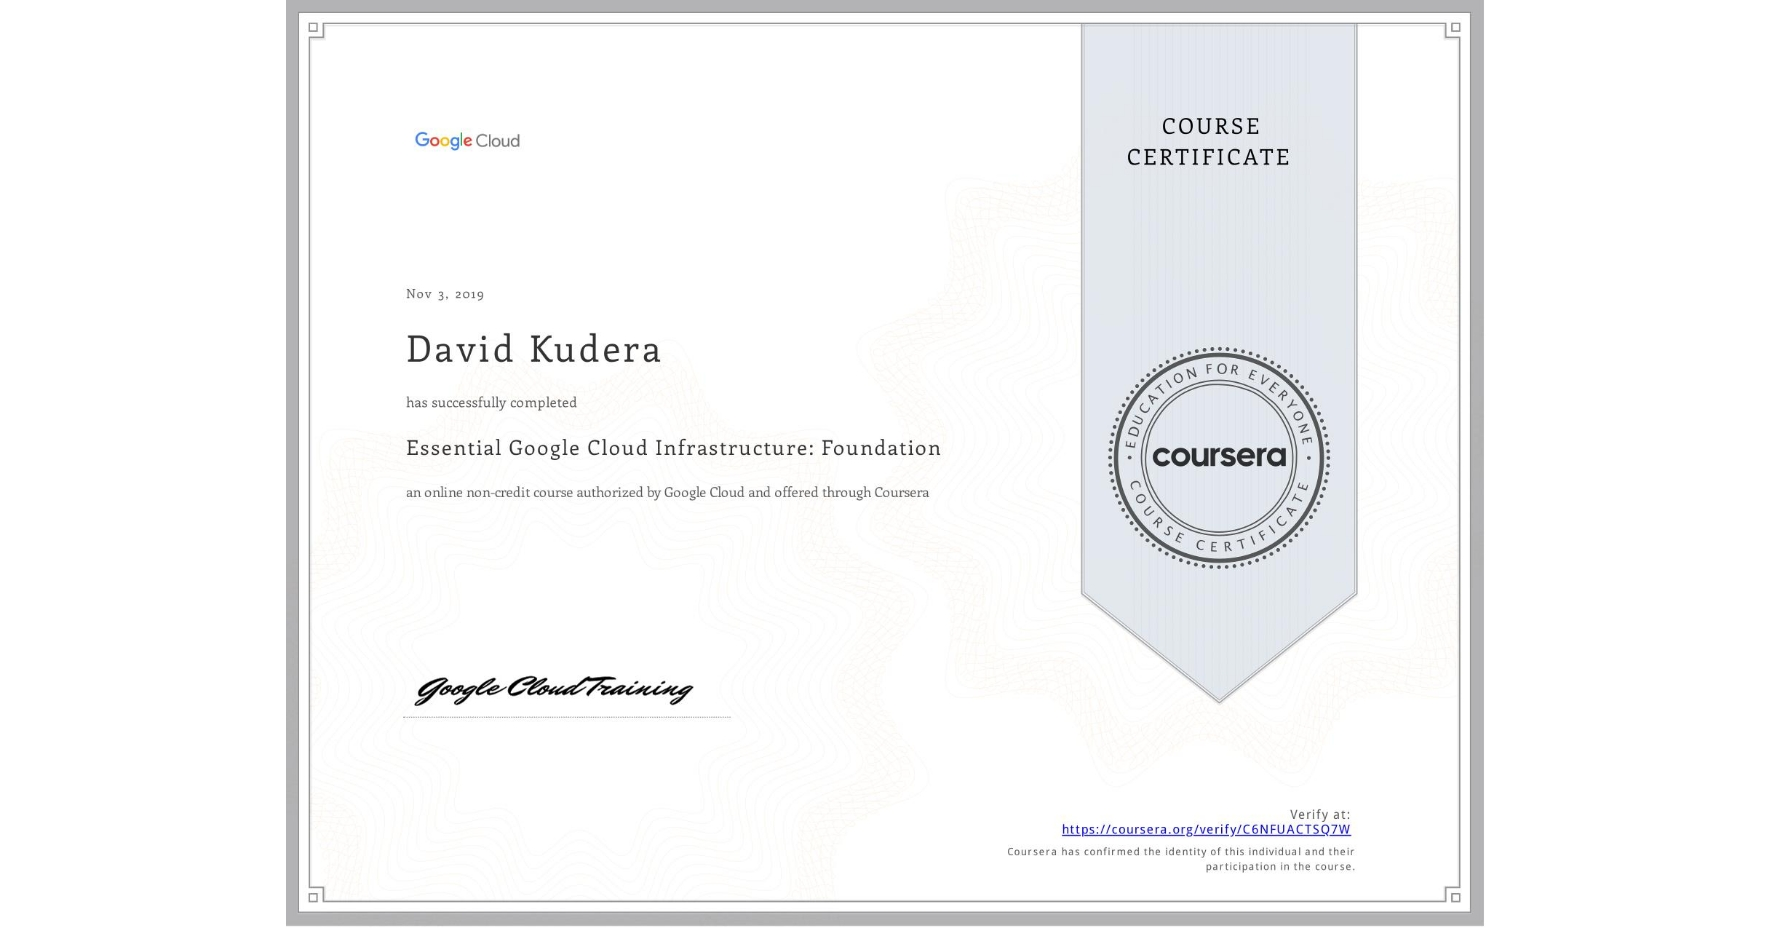 View certificate for David Kudera, Essential Google Cloud Infrastructure: Foundation, an online non-credit course authorized by Google Cloud and offered through Coursera